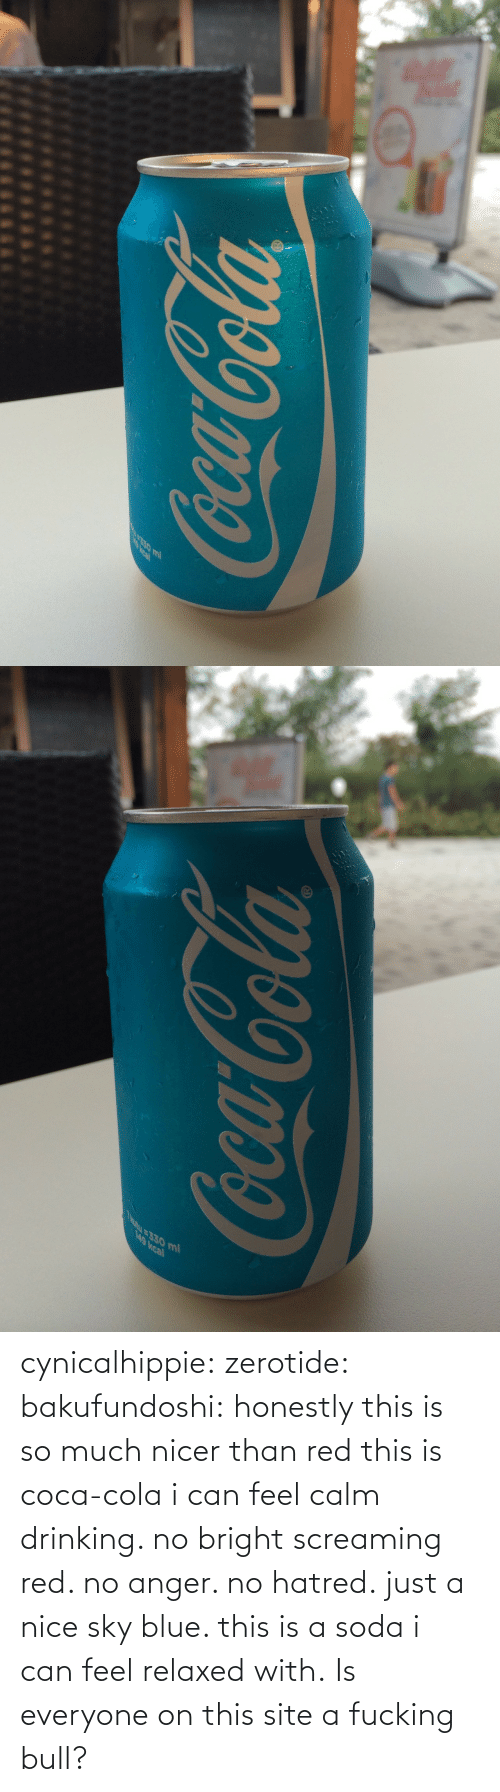 sky: cynicalhippie:  zerotide:  bakufundoshi:  honestly this is so much nicer than red  this is coca-cola i can feel calm drinking. no bright screaming red. no anger. no hatred. just a nice sky blue. this is a soda i can feel relaxed with.   Is everyone on this site a fucking bull?